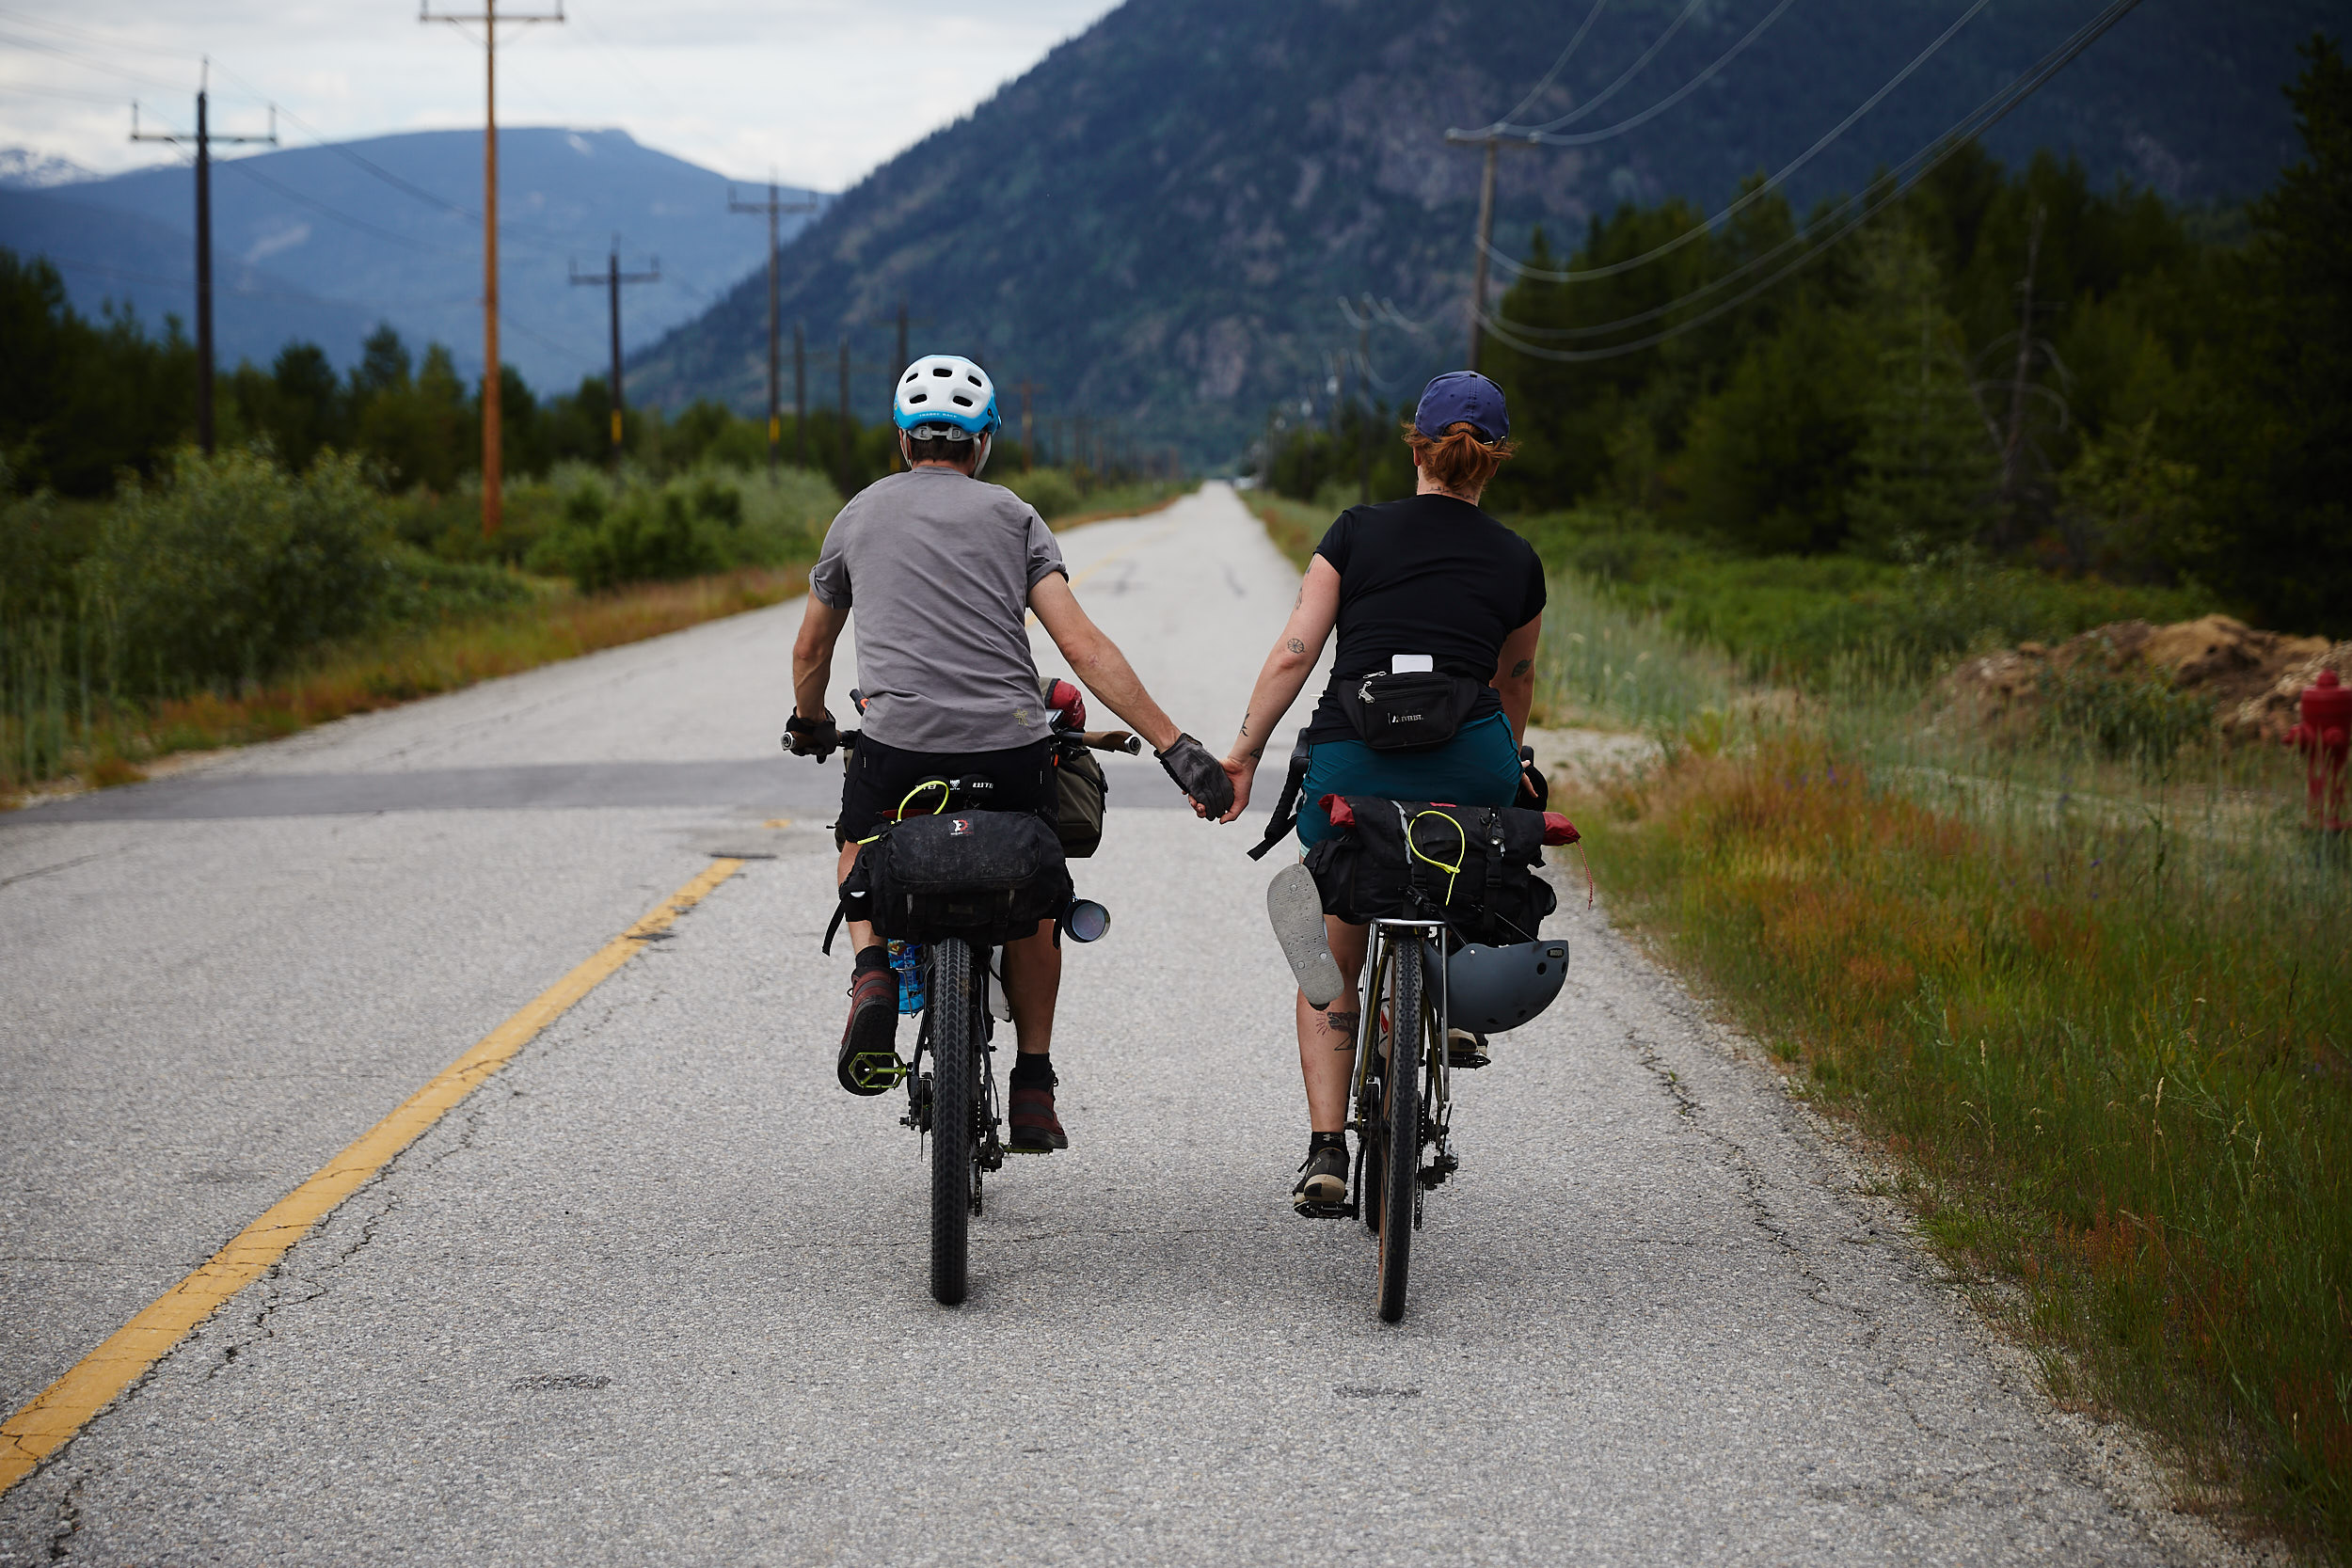 10 days and almost 700km later we arrived in Castlegar!